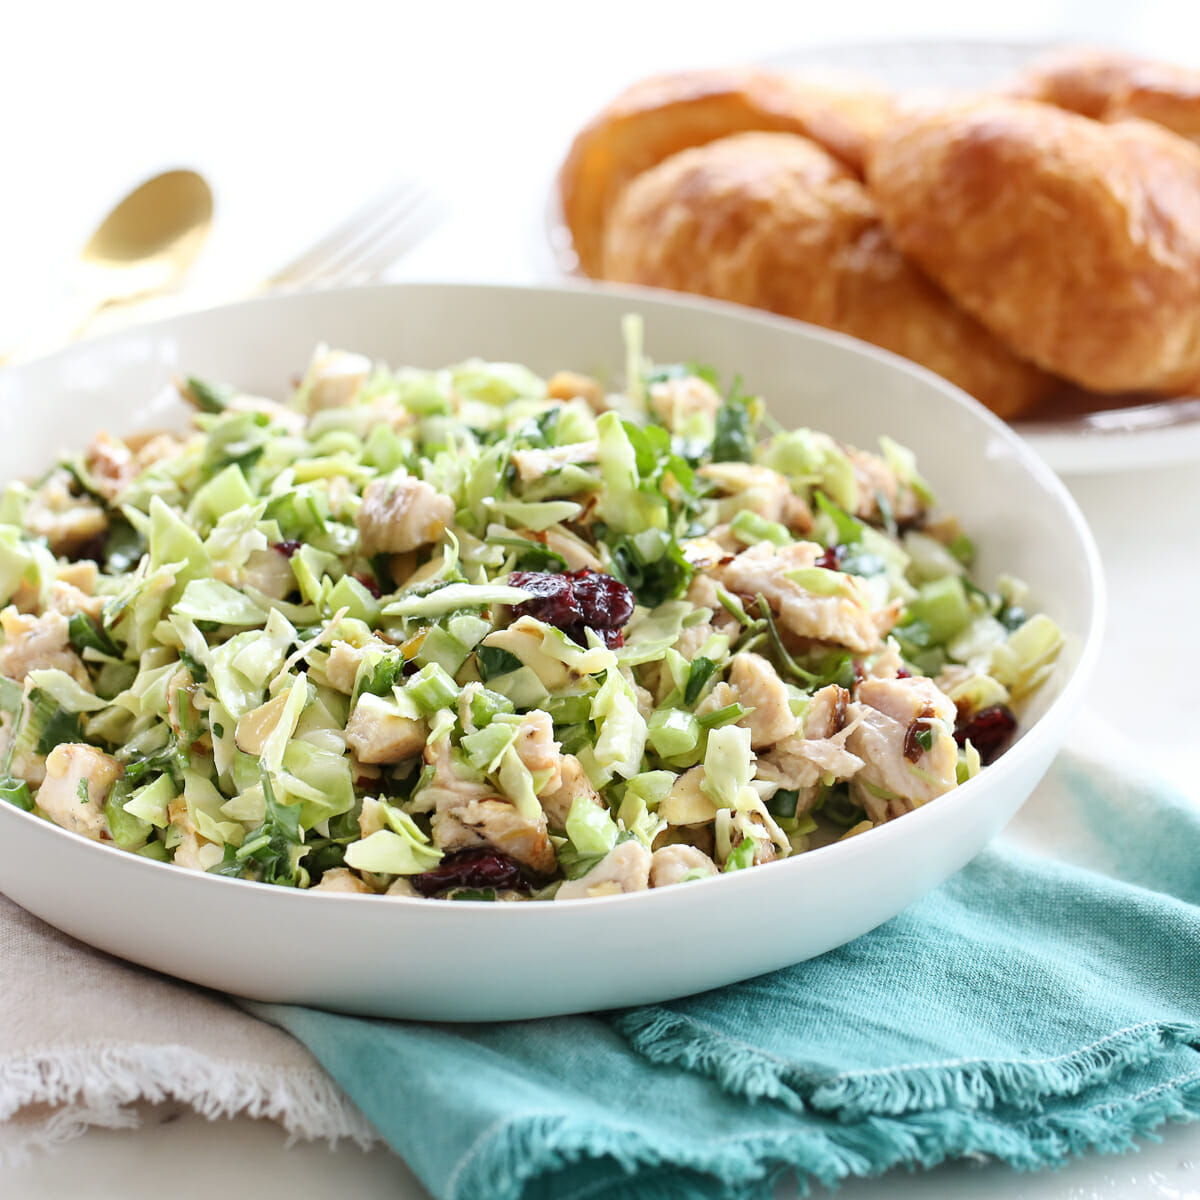 Cabbage Chicken Salad in Bowl